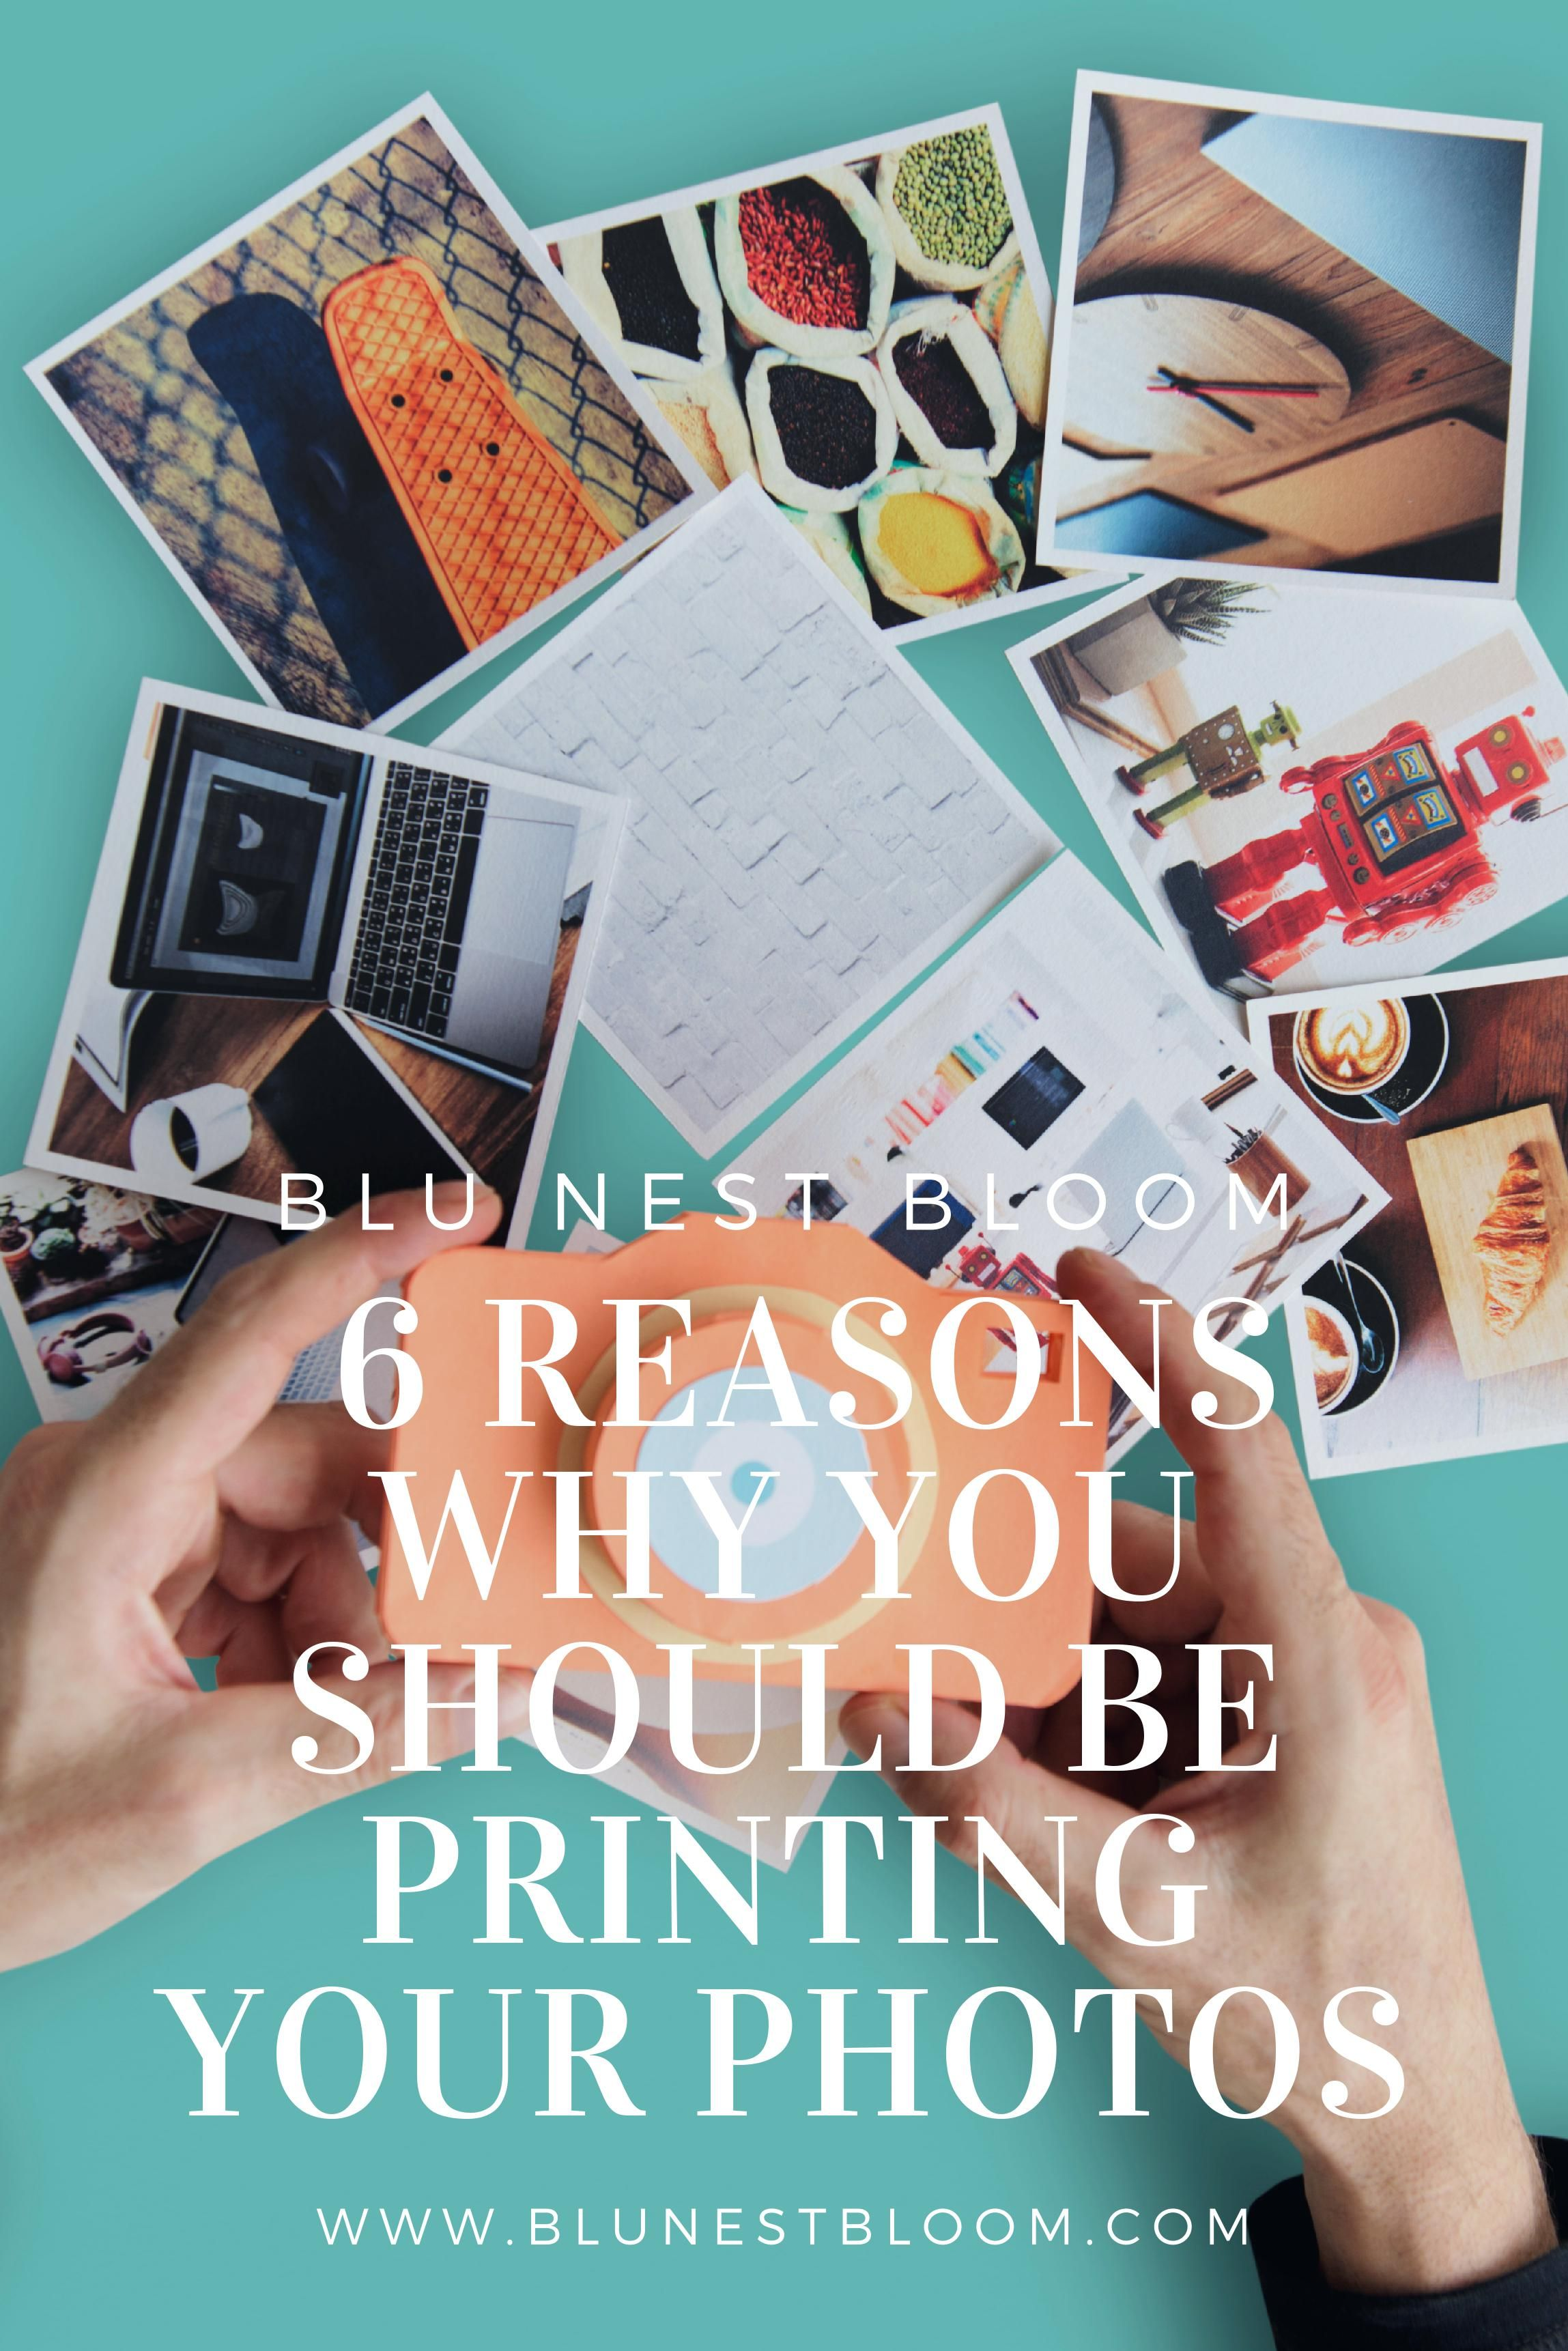 There are so many reasons why you should be printing your photos. While the digital age we are living in reaps many rewards, there are many advantages in taking a step back and embracing certain things from yesteryear. Printing family photos lives on the very top of that list. #momtographer #momtographers #momswithcameras #printyourphotos #keepsakes #memorykeeping